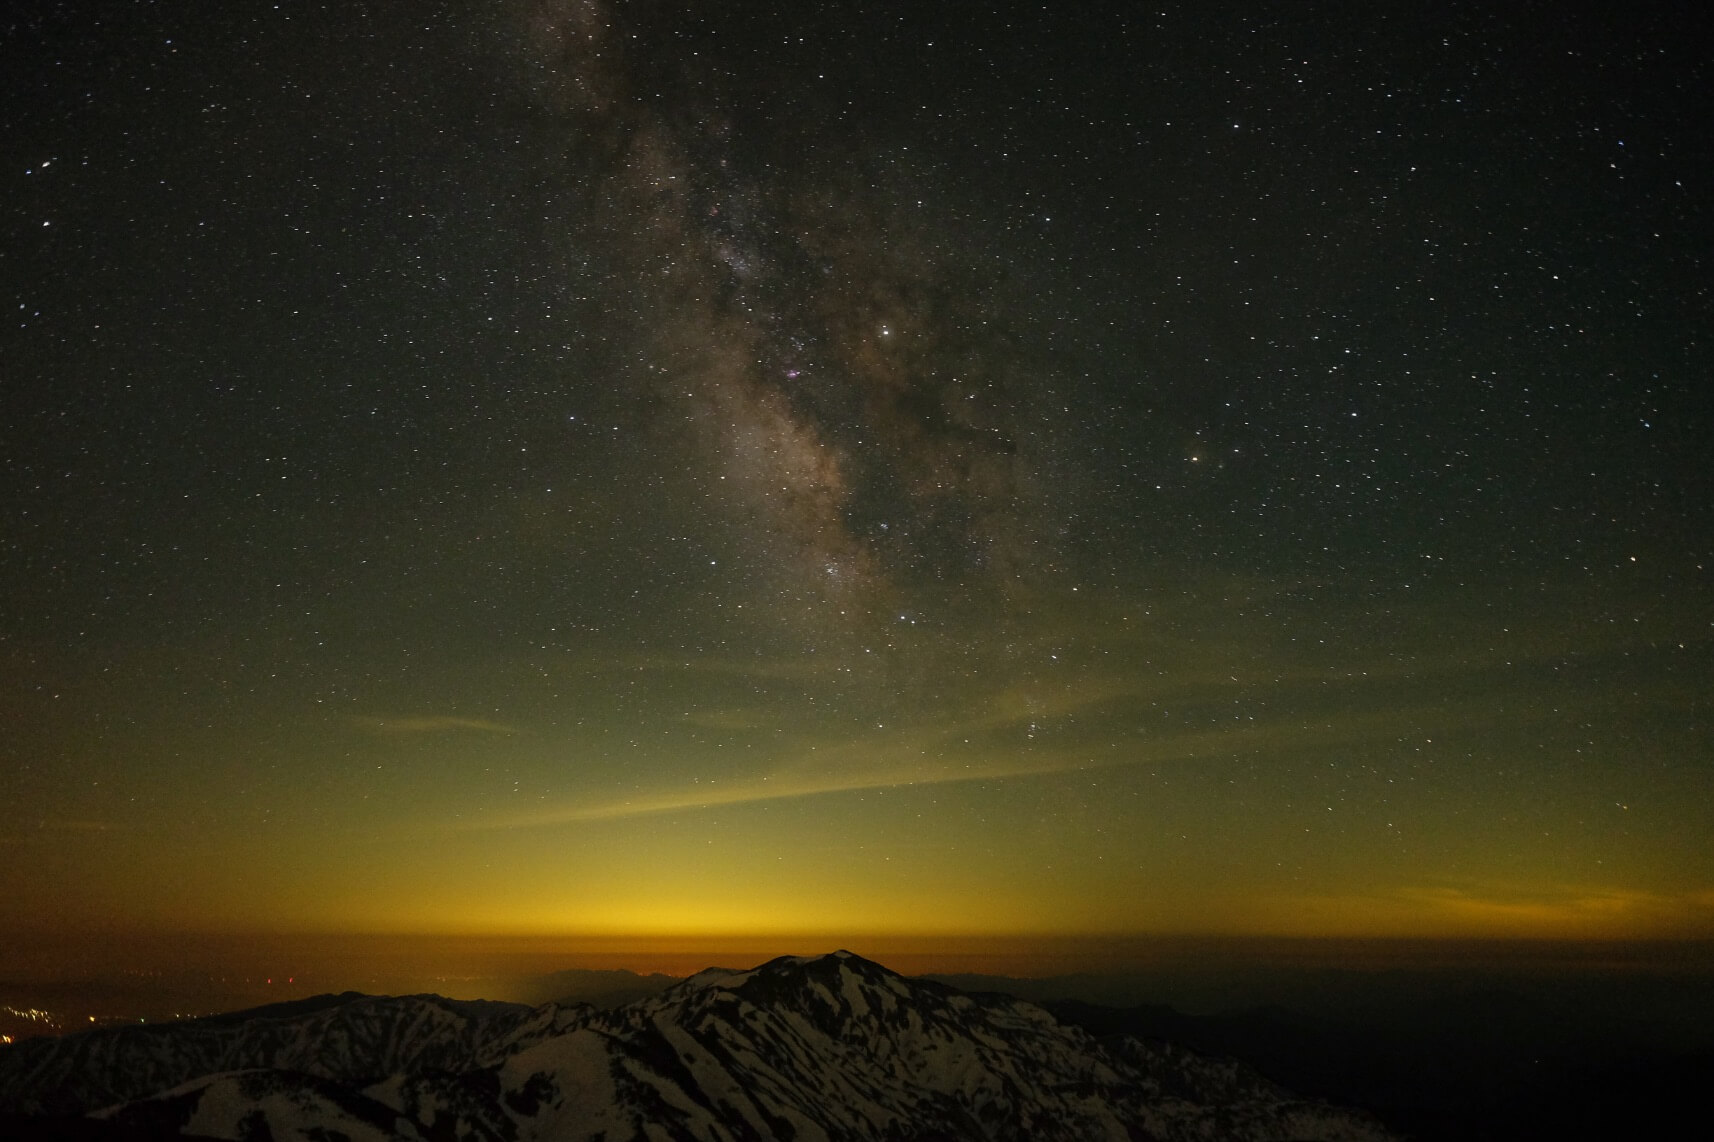 The Milky Way Over Mt. Bessan as seen from Mt. Haku (Hakusan), Ishikawa